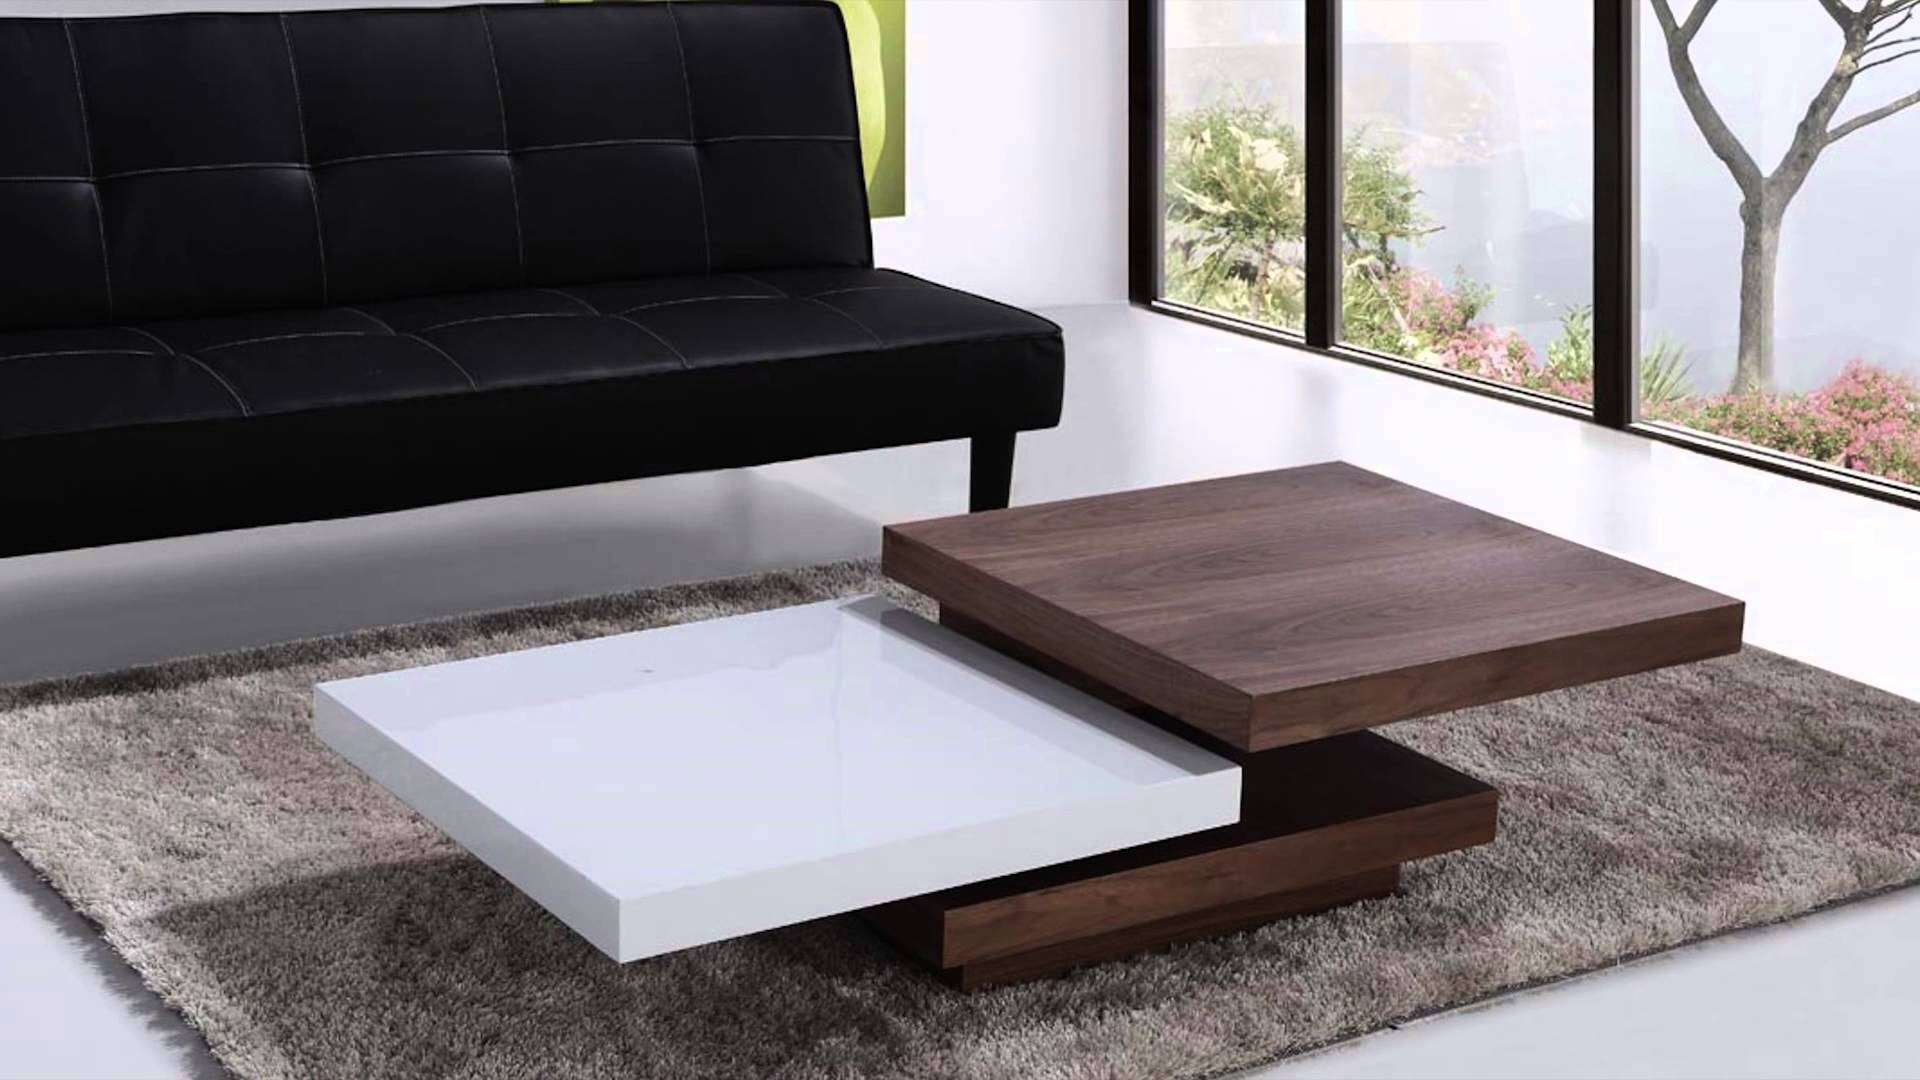 Beliani Coffee Table - Swivel Panels - Walnut And White - Aveiro with regard to Spin Rotating Coffee Tables (Image 7 of 30)